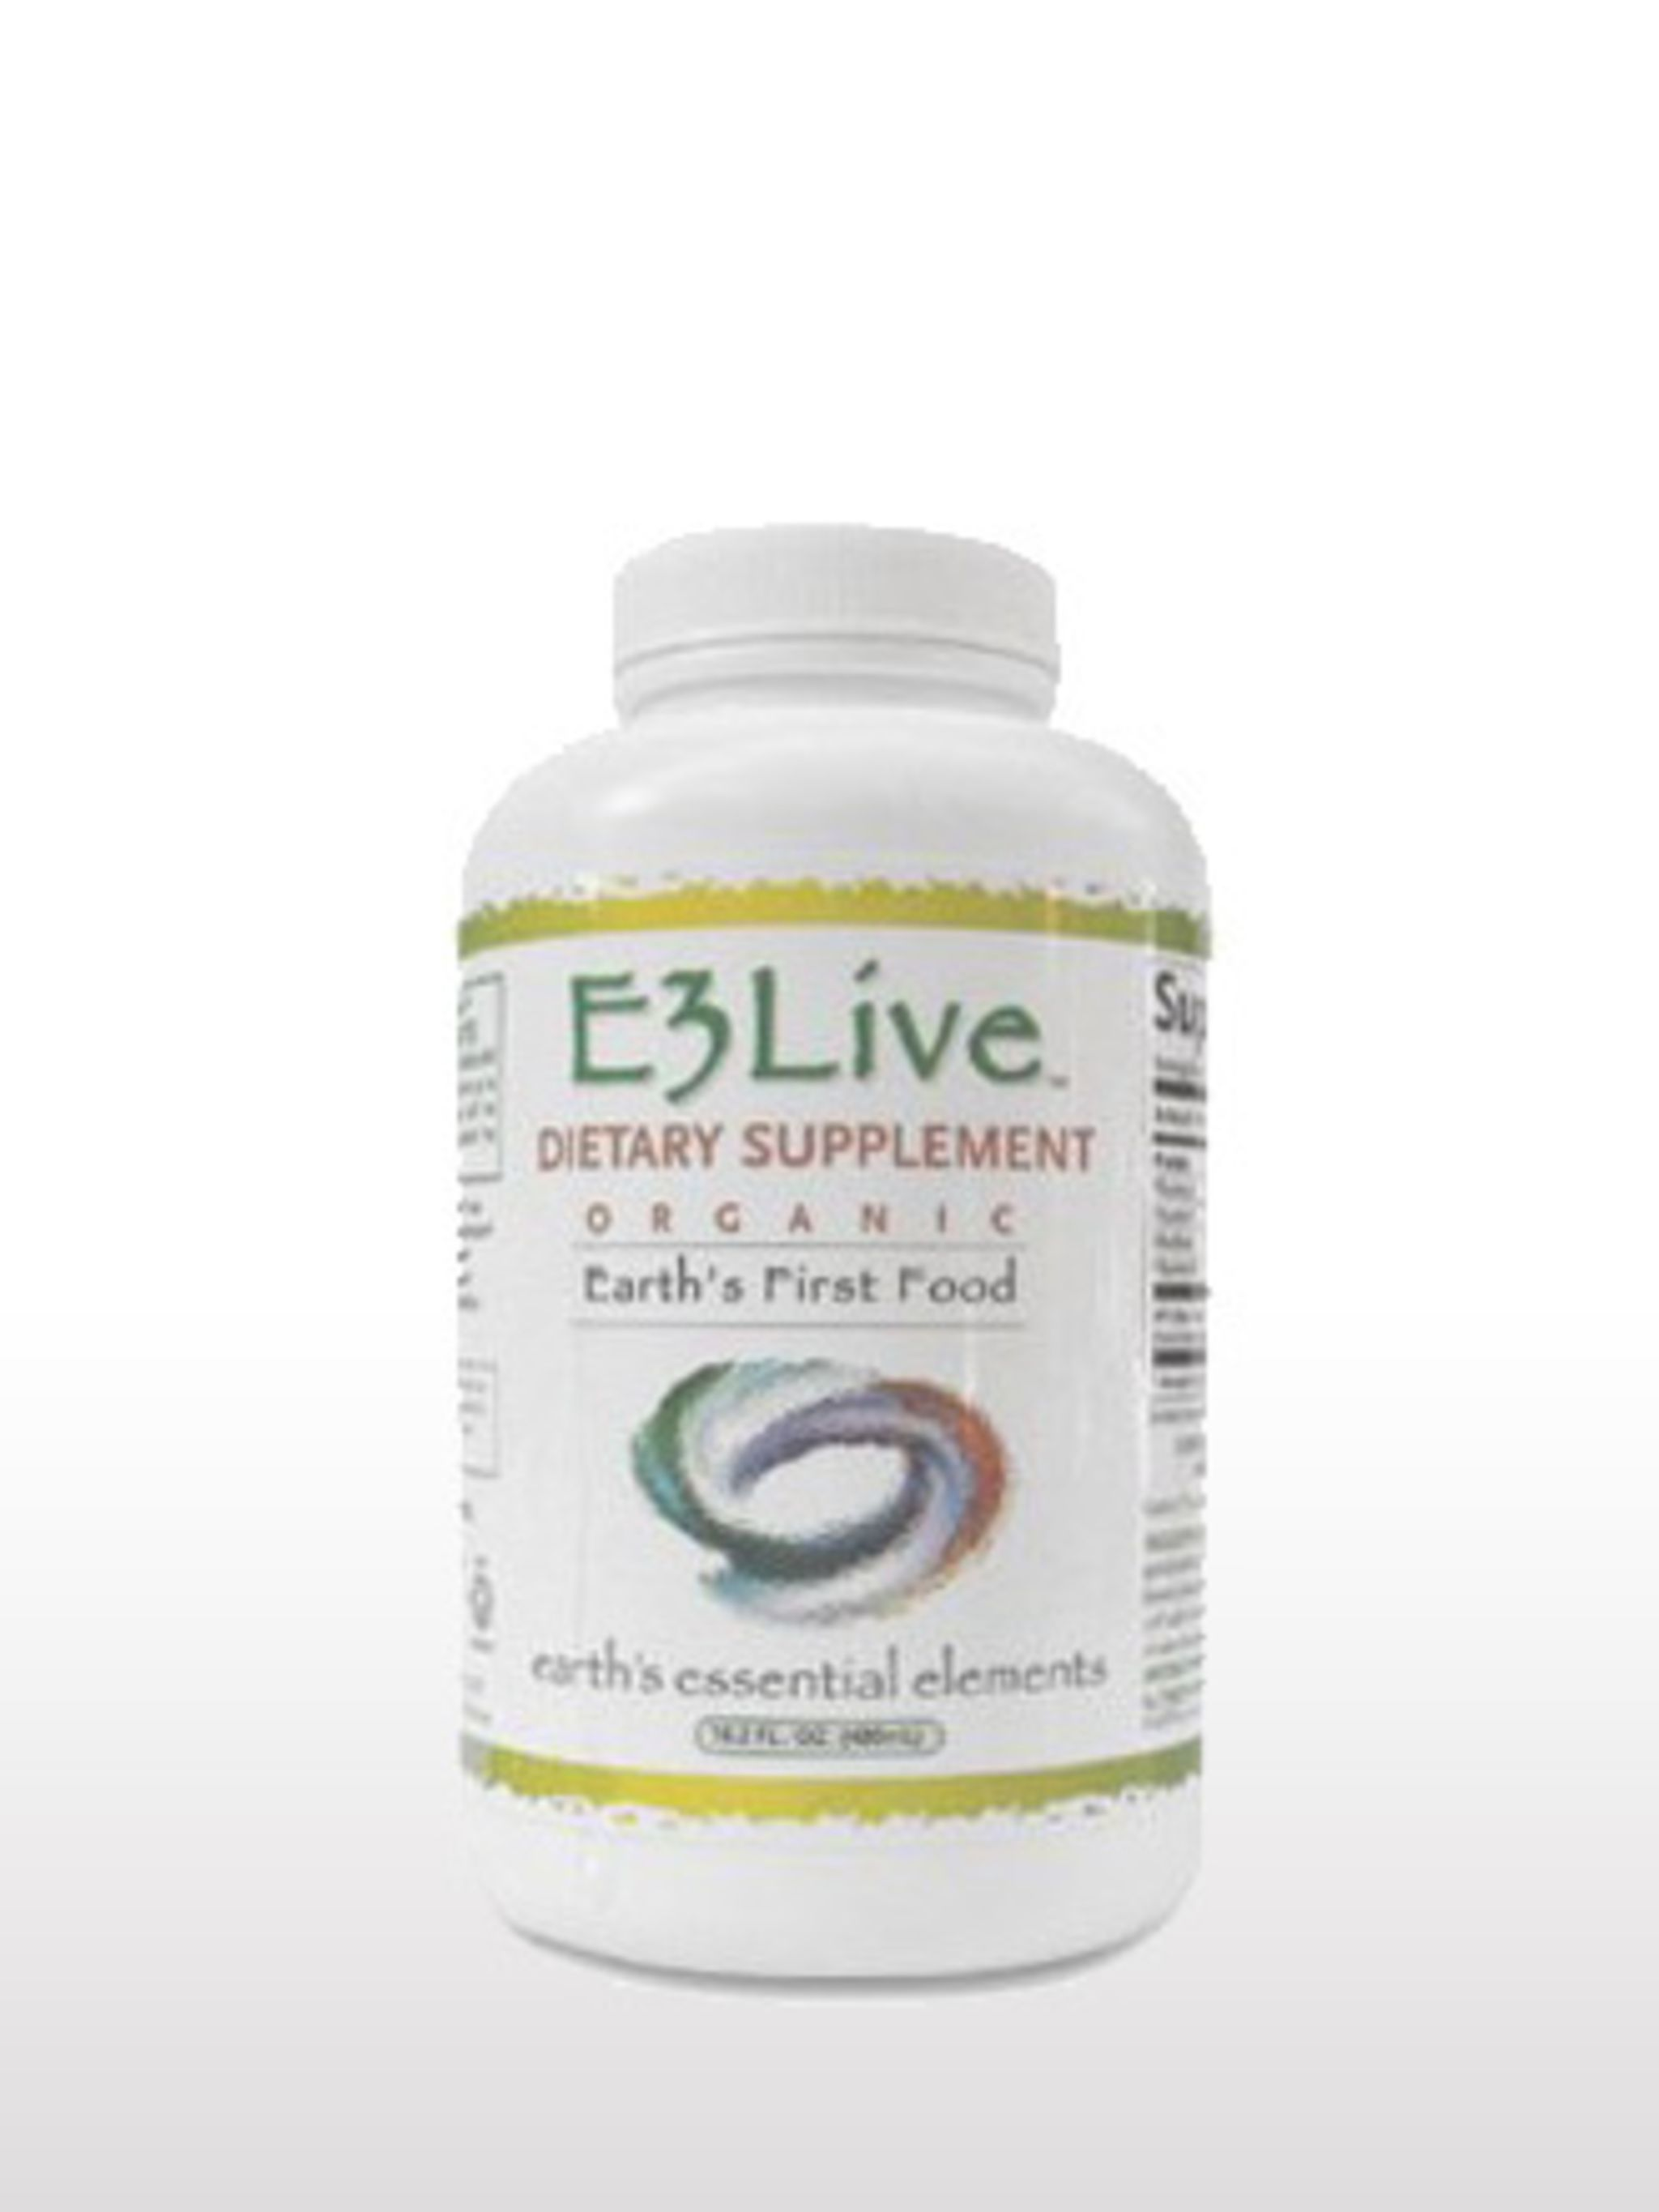 <p><strong>Saturday 10am</strong></p><p>I wake up after a good night's sleep and resist the urge to wear any make-up. Instead I start my morning with some goodness from the inside out and pour myself a glass of apple juice with a big glug of E3 live algae